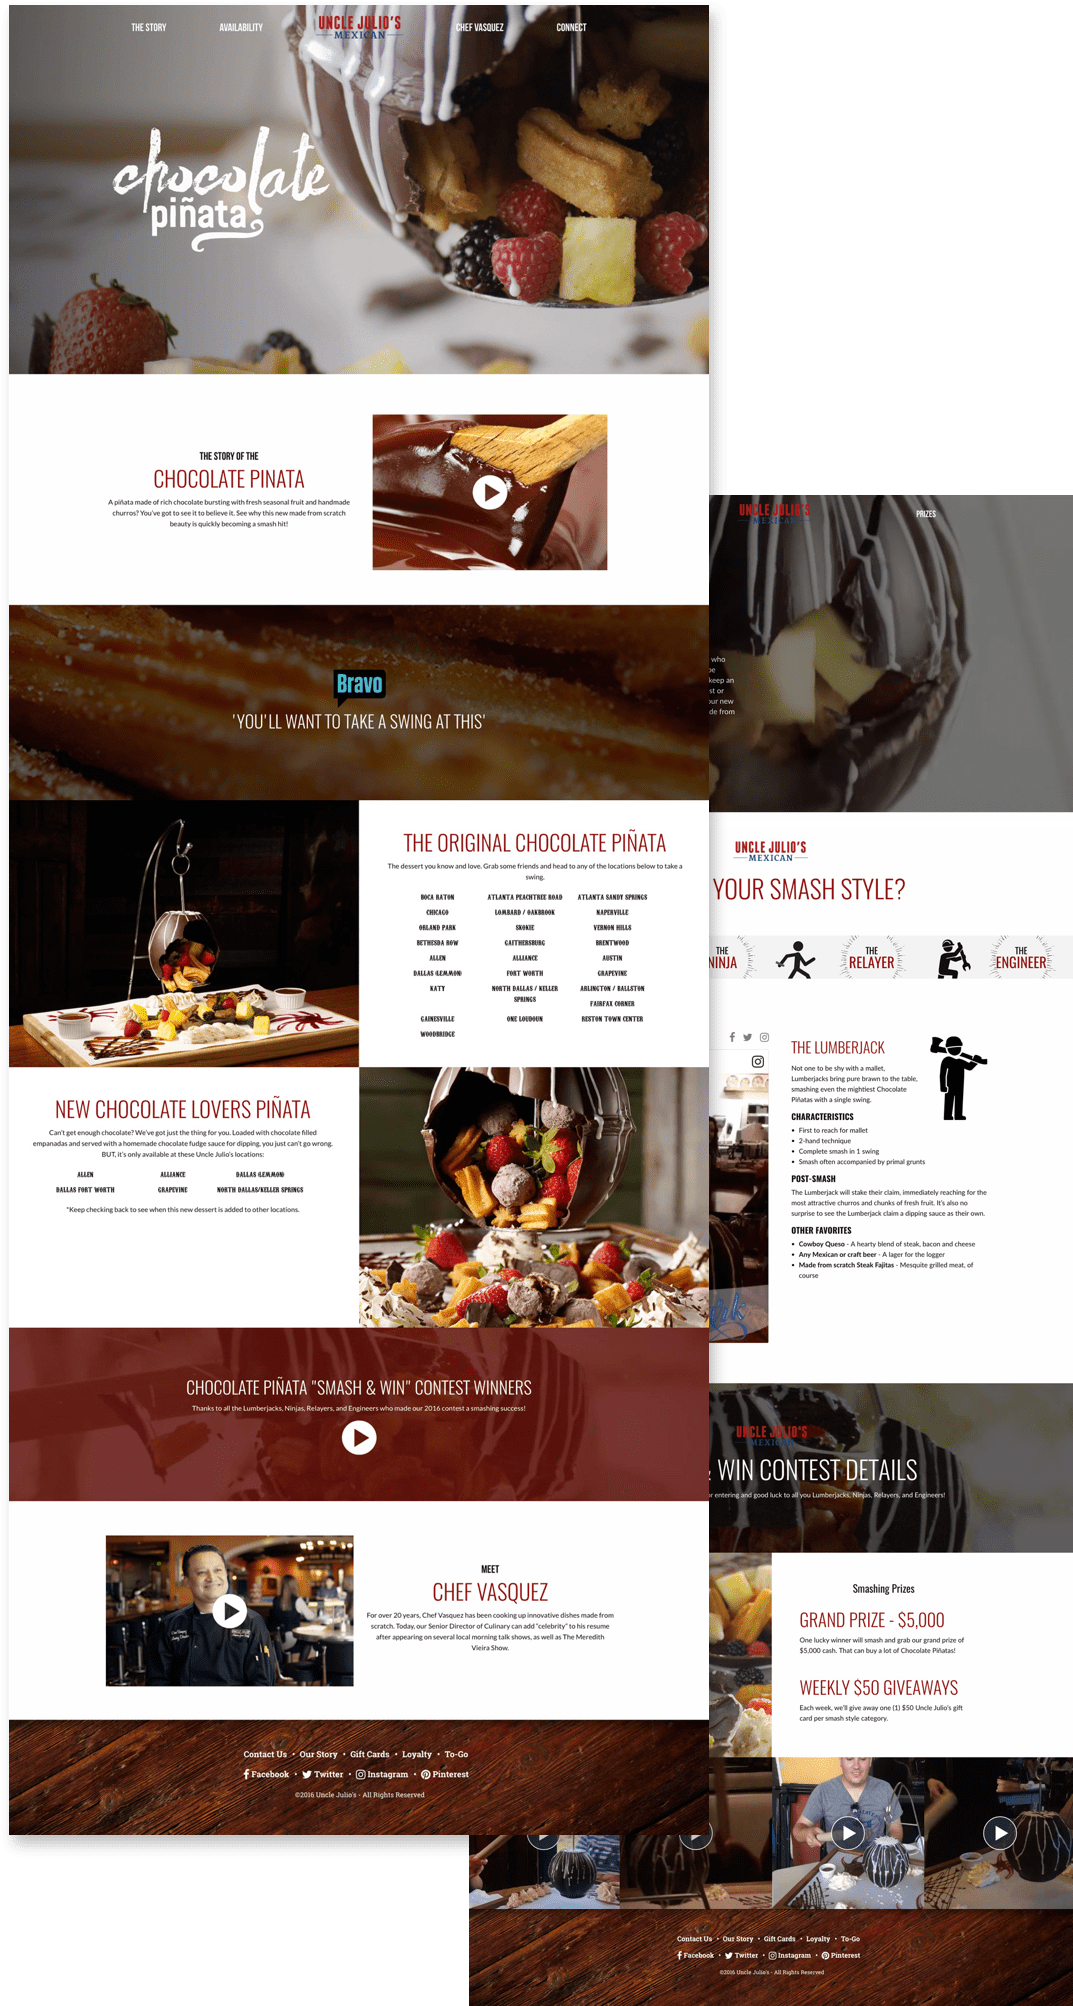 Chocolate Pinata Microsite Design